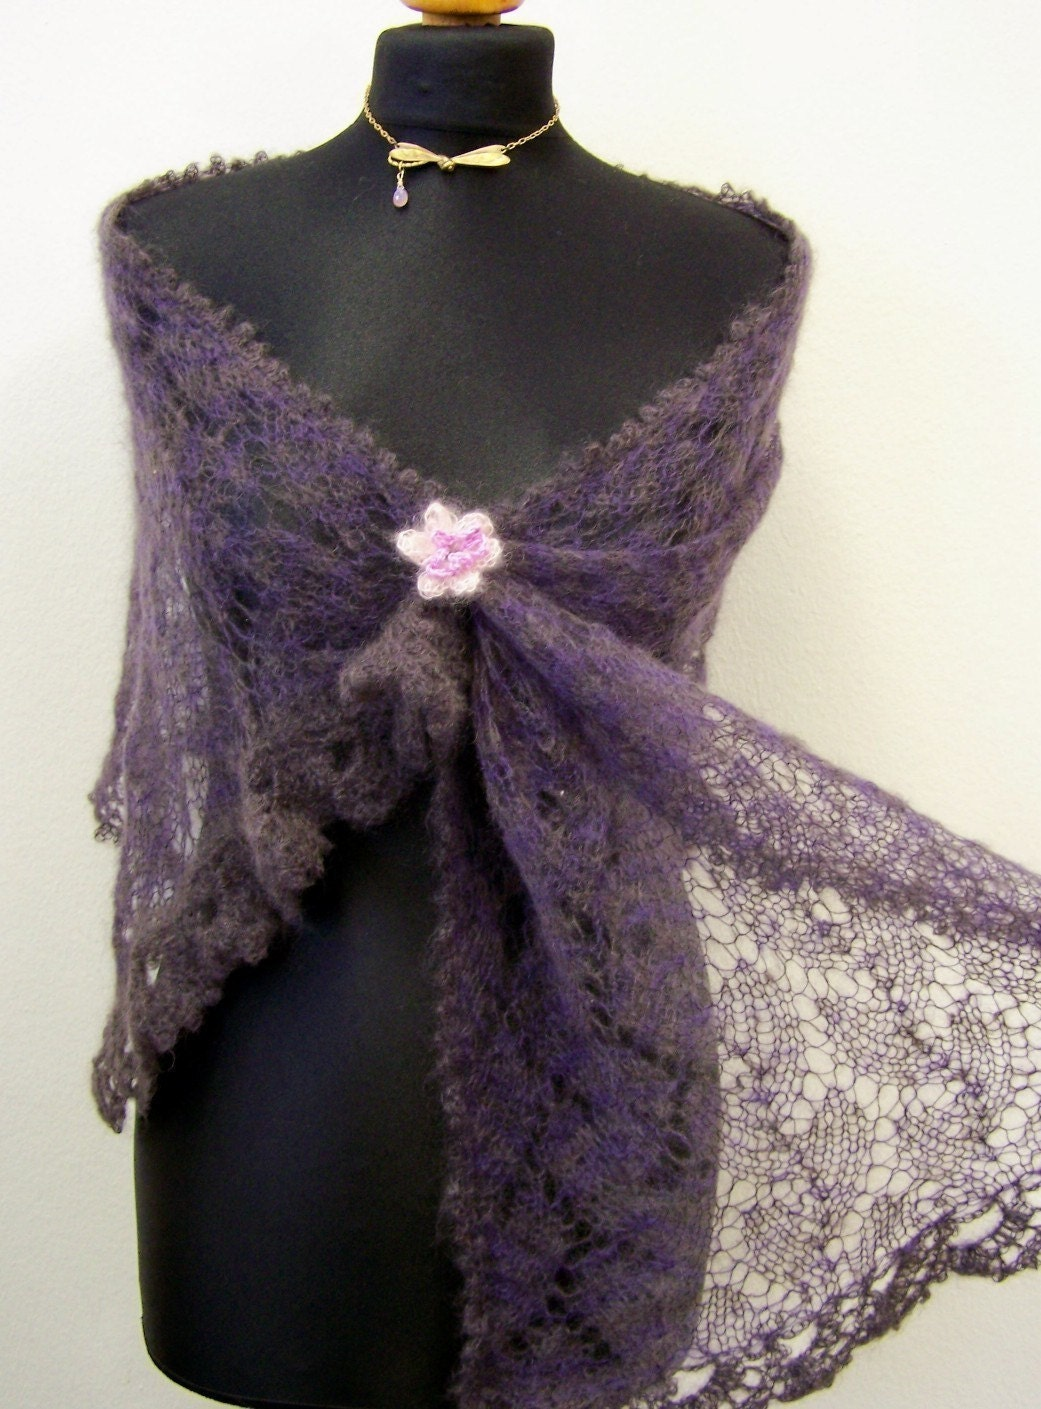 Knitting Patterns For Lace Stoles : stole knitting pattern two-coloured lace shawl pdf by Wollarium